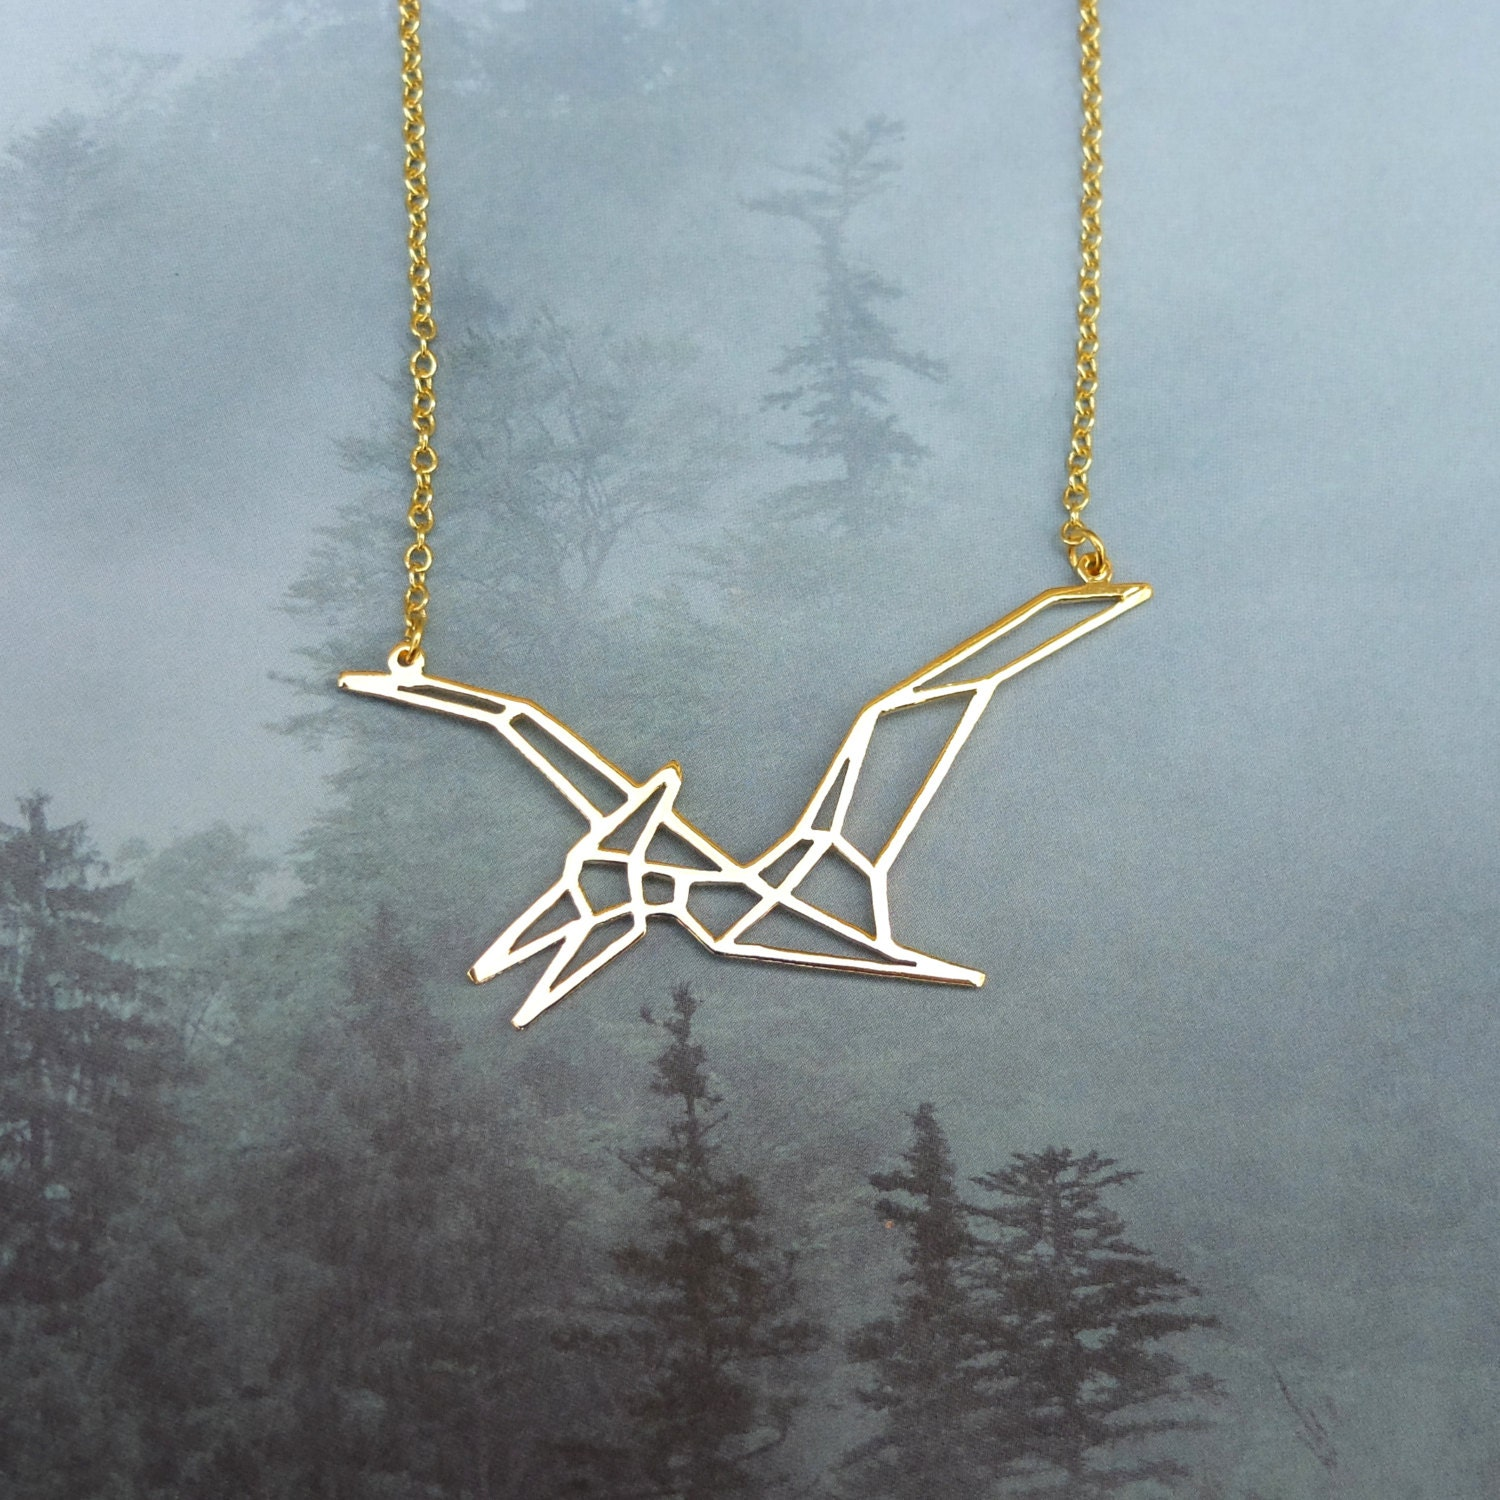 Pterodactyl Dinosaur Necklace Origami Necklace Statement - photo#24